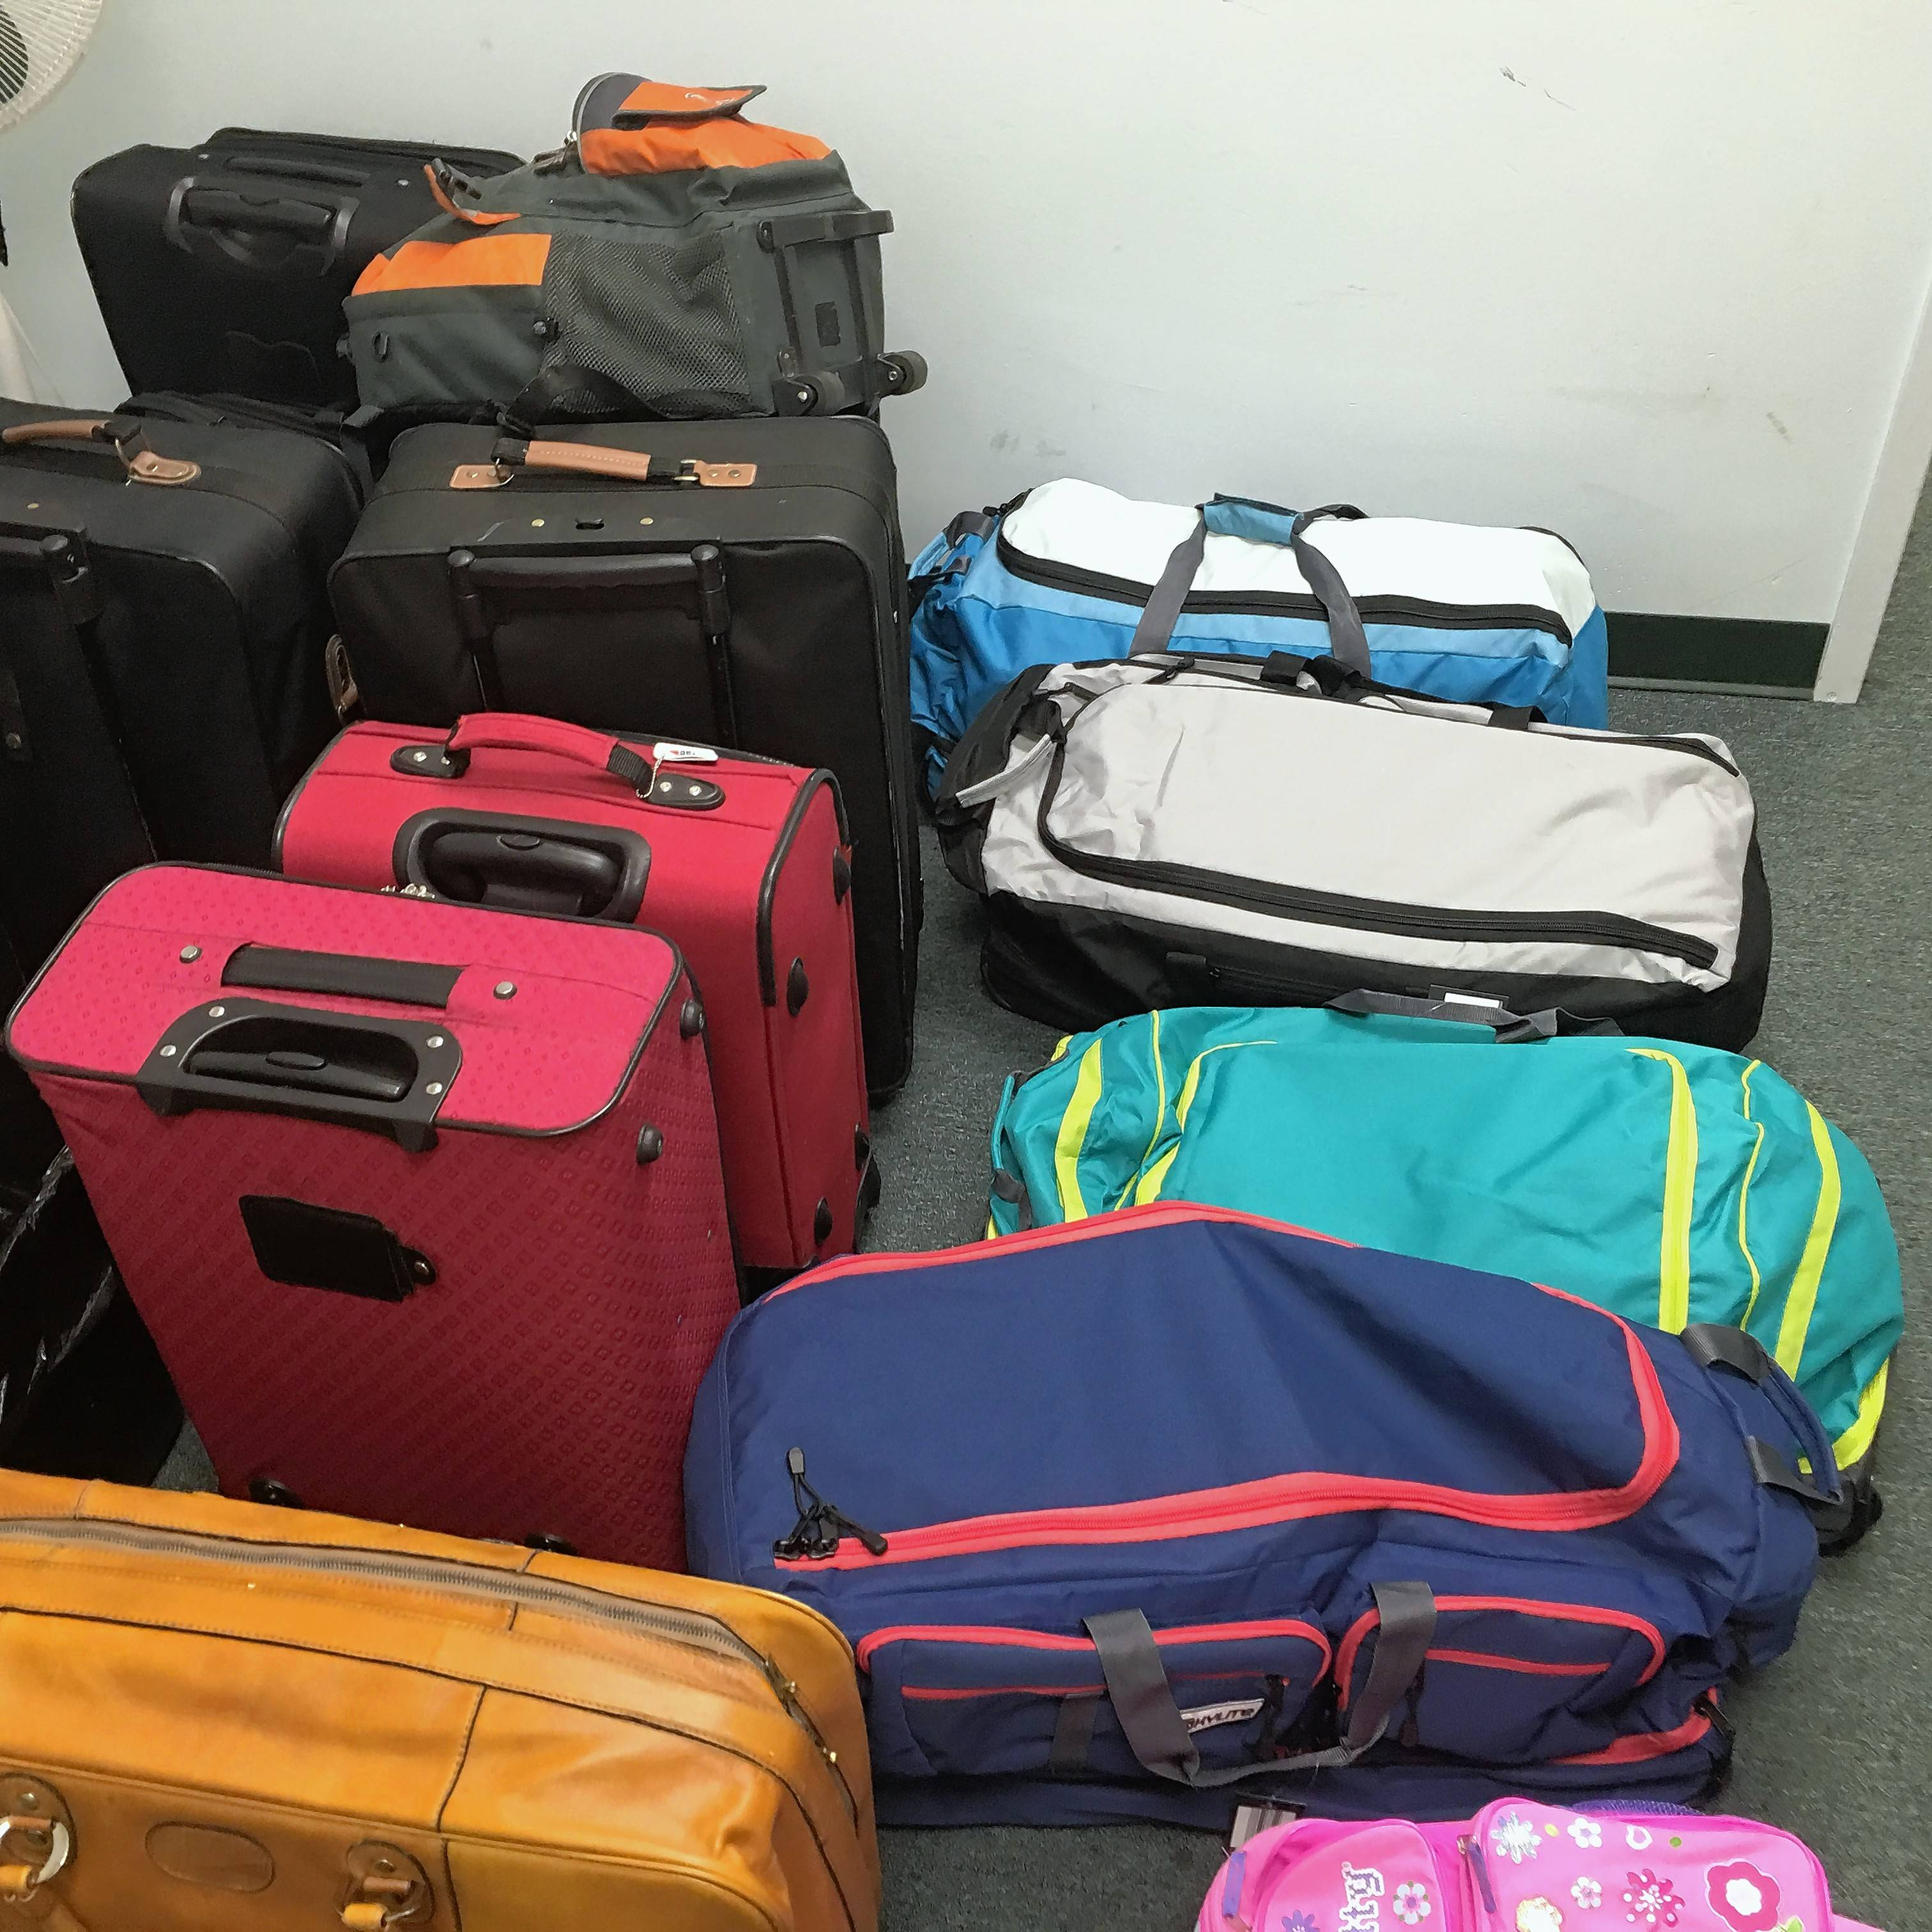 These suitcases were collected by the fifth-grade Girl Scout troop from Virginia Lake School in Palatine.